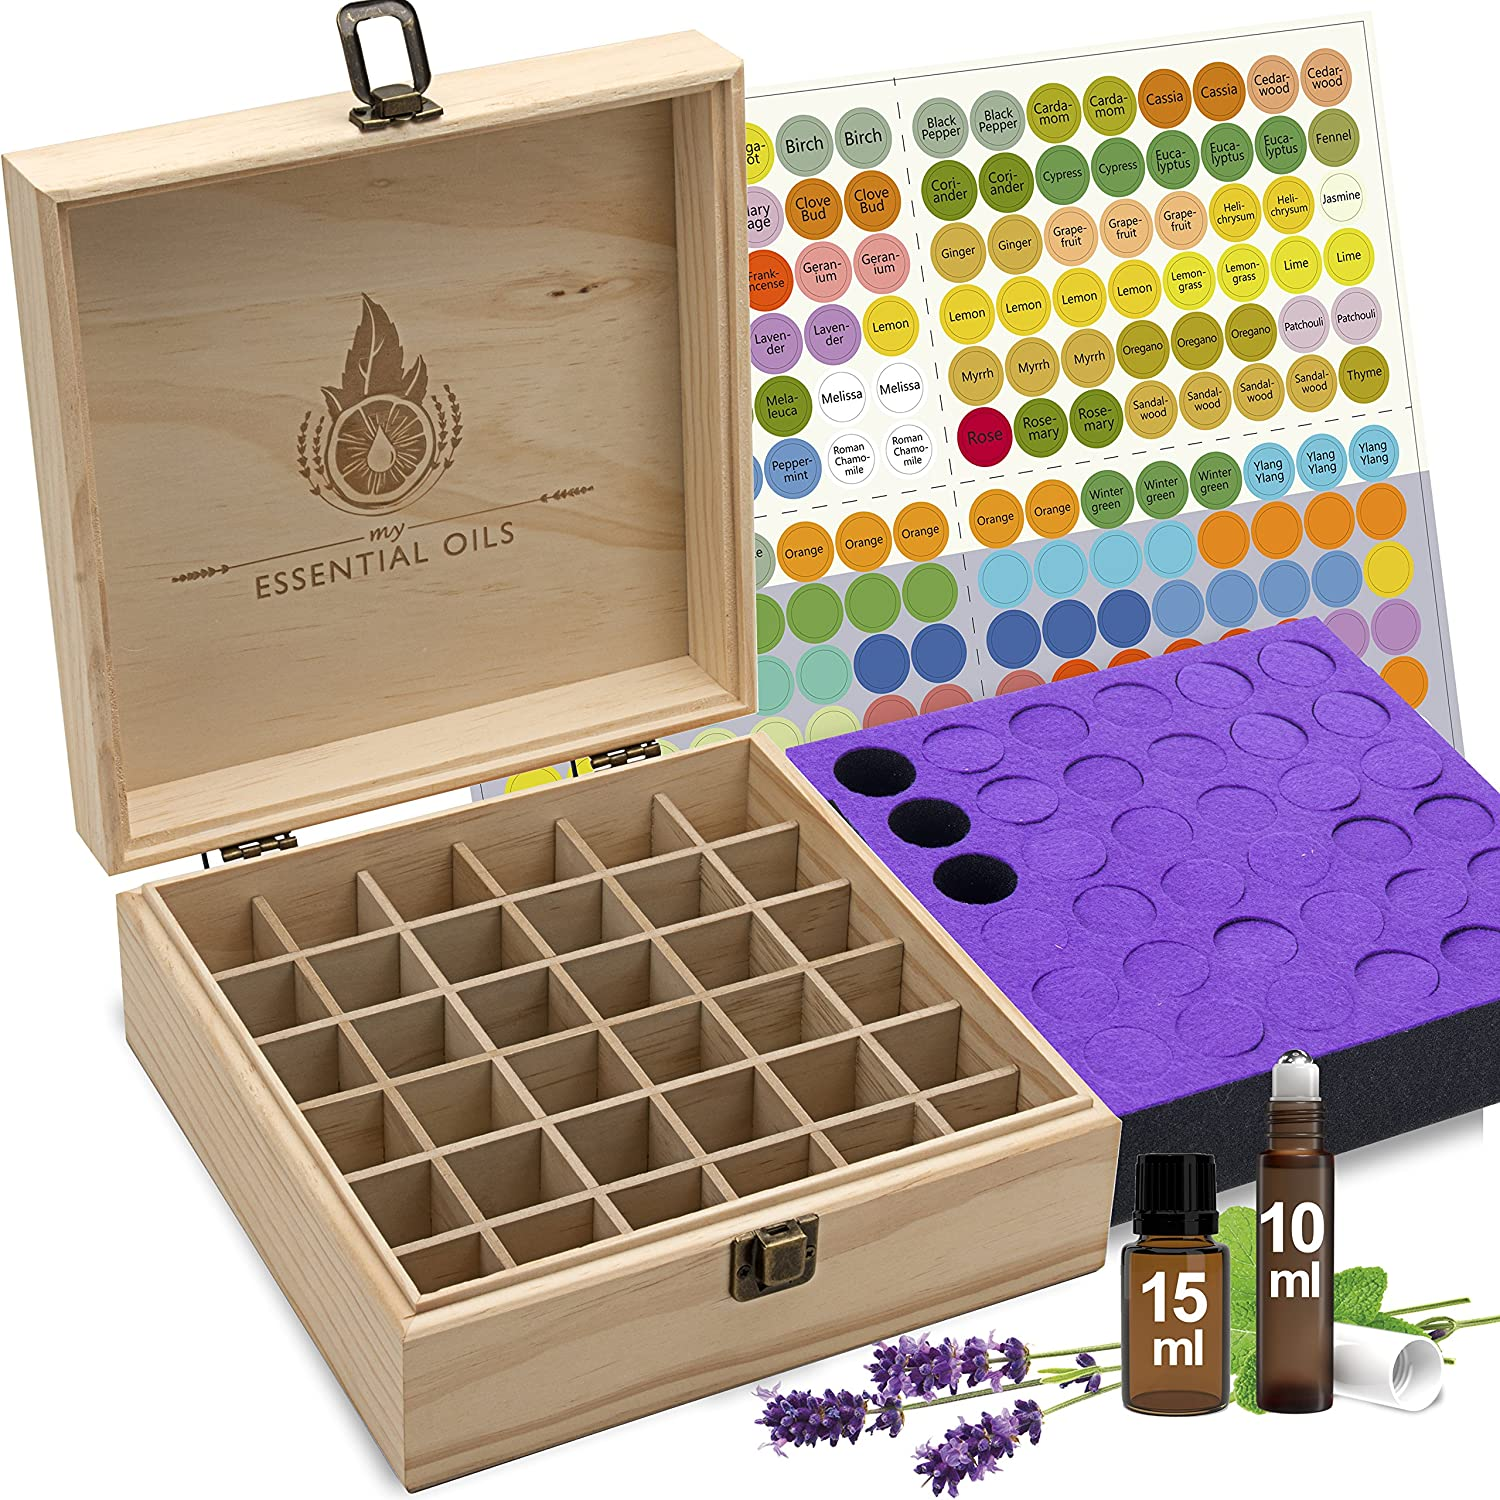 Earth's Gift Essential Oil Case